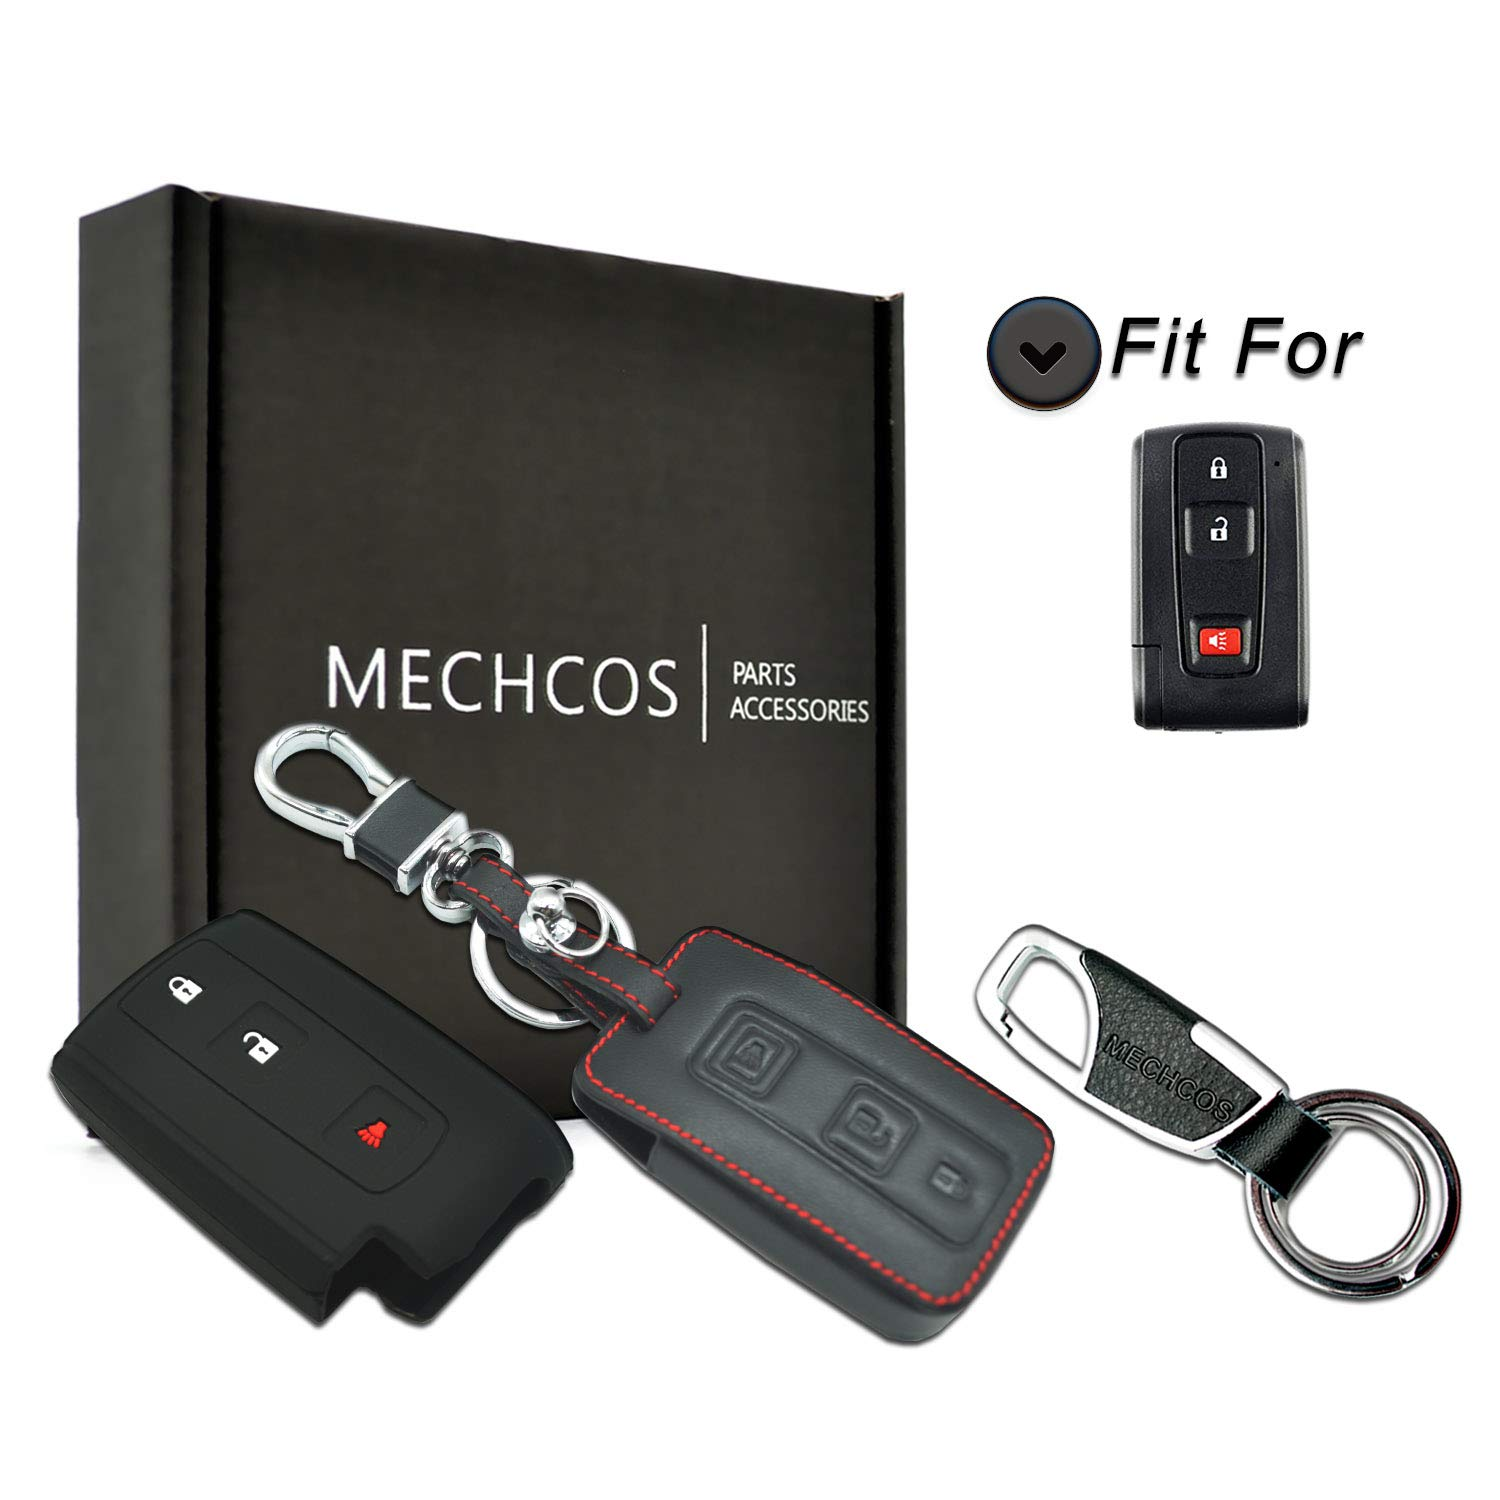 MECHCOS For 2+1 Buttons 2004-2009 Toyota Prius Leather Smart Keyless Entry Remote Control Key Fob Cover Pouch Bag Jacket Case Protector Shell